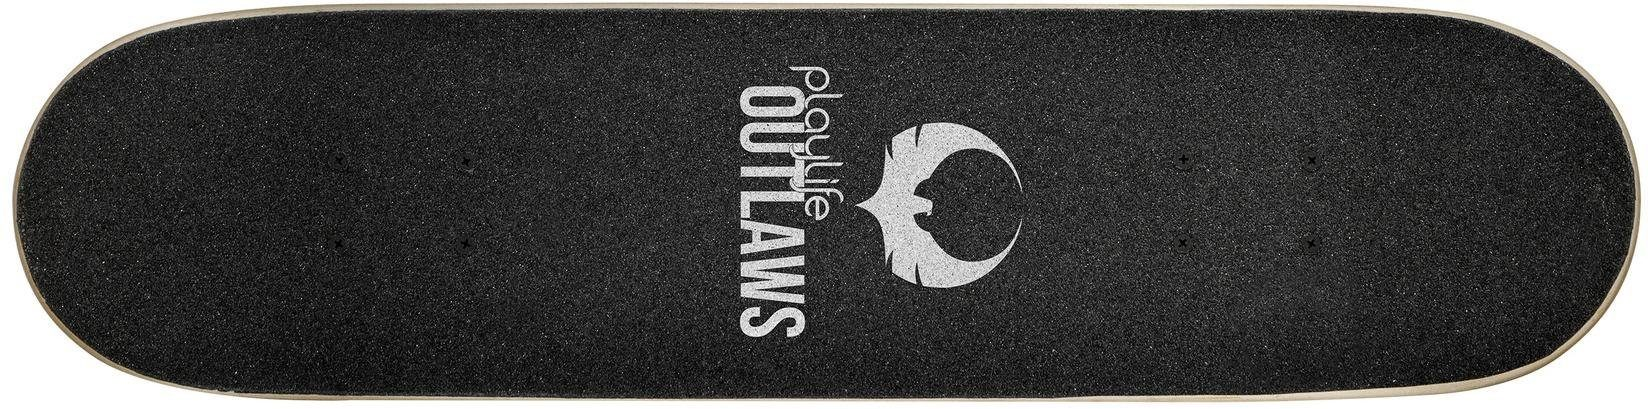 Playlife Skateboard »Outlaw«